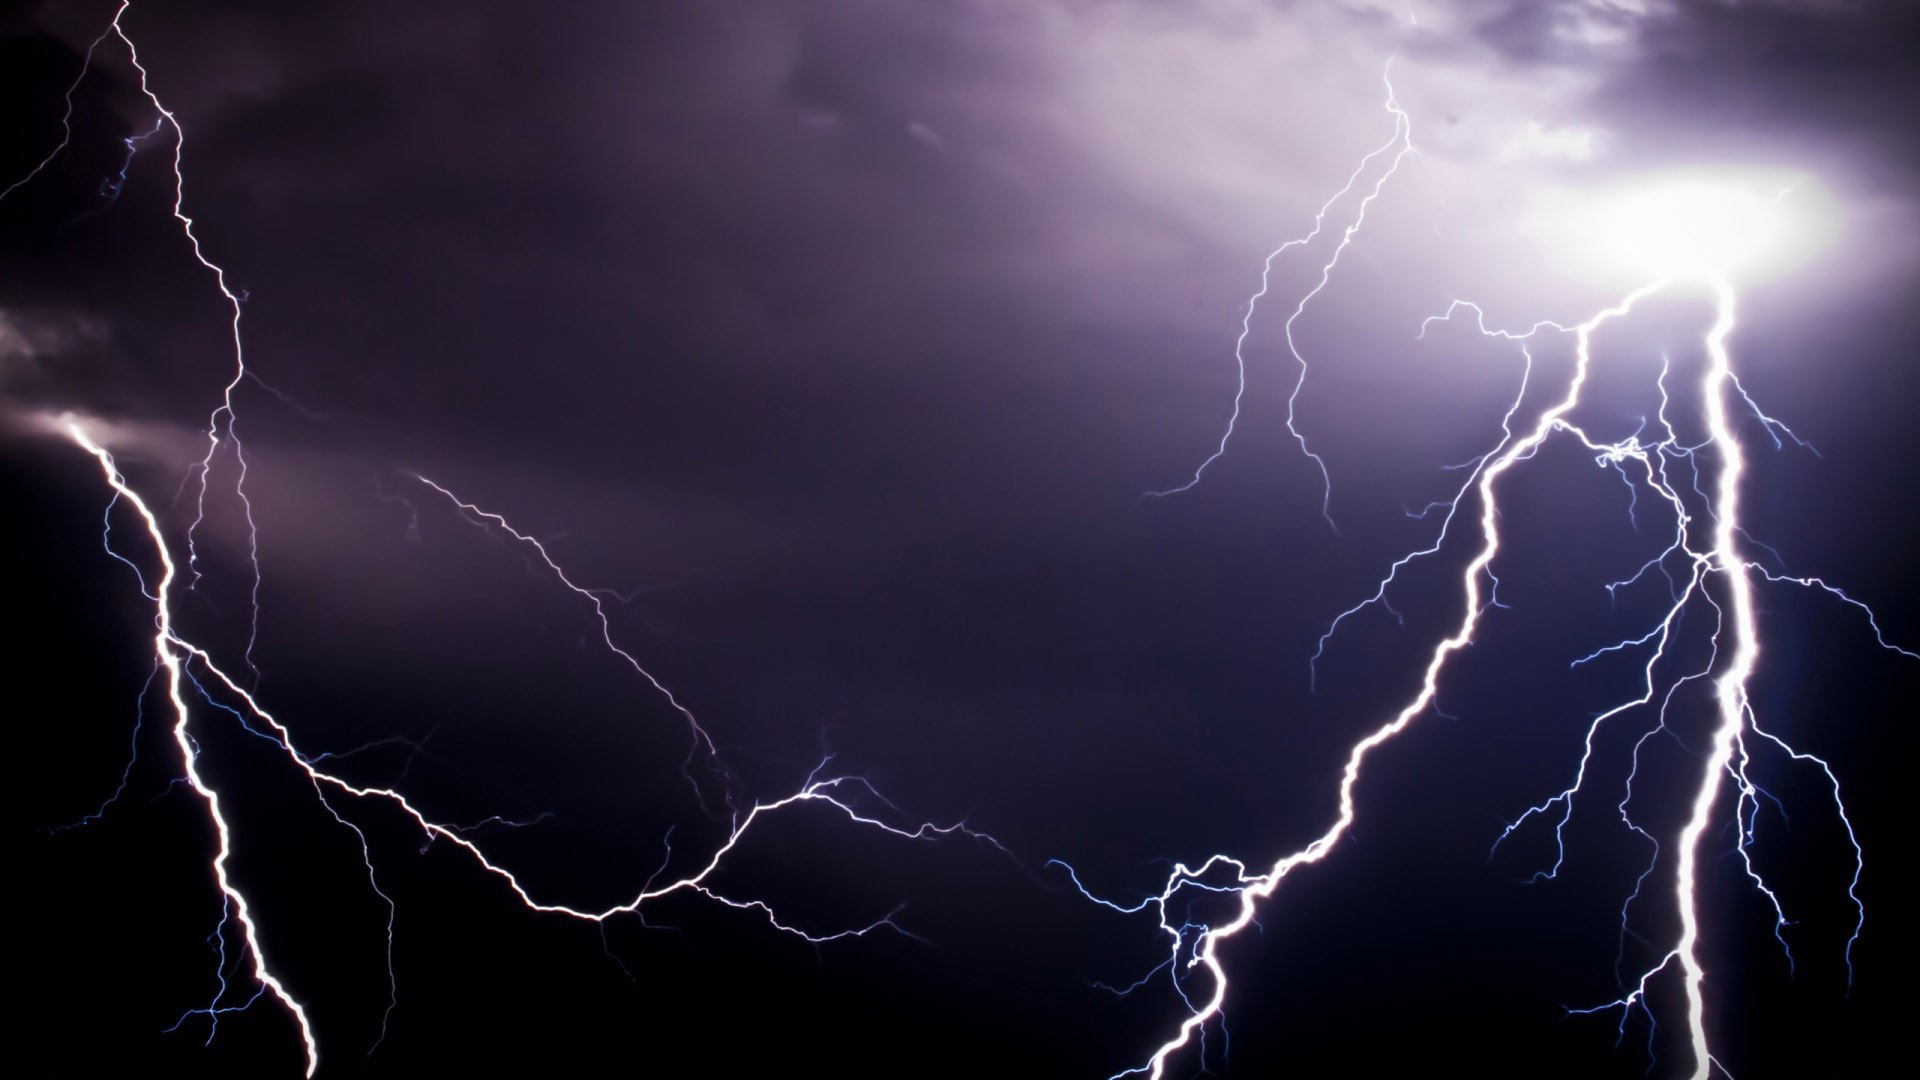 Lightning Wallpapers HD 1920x1080